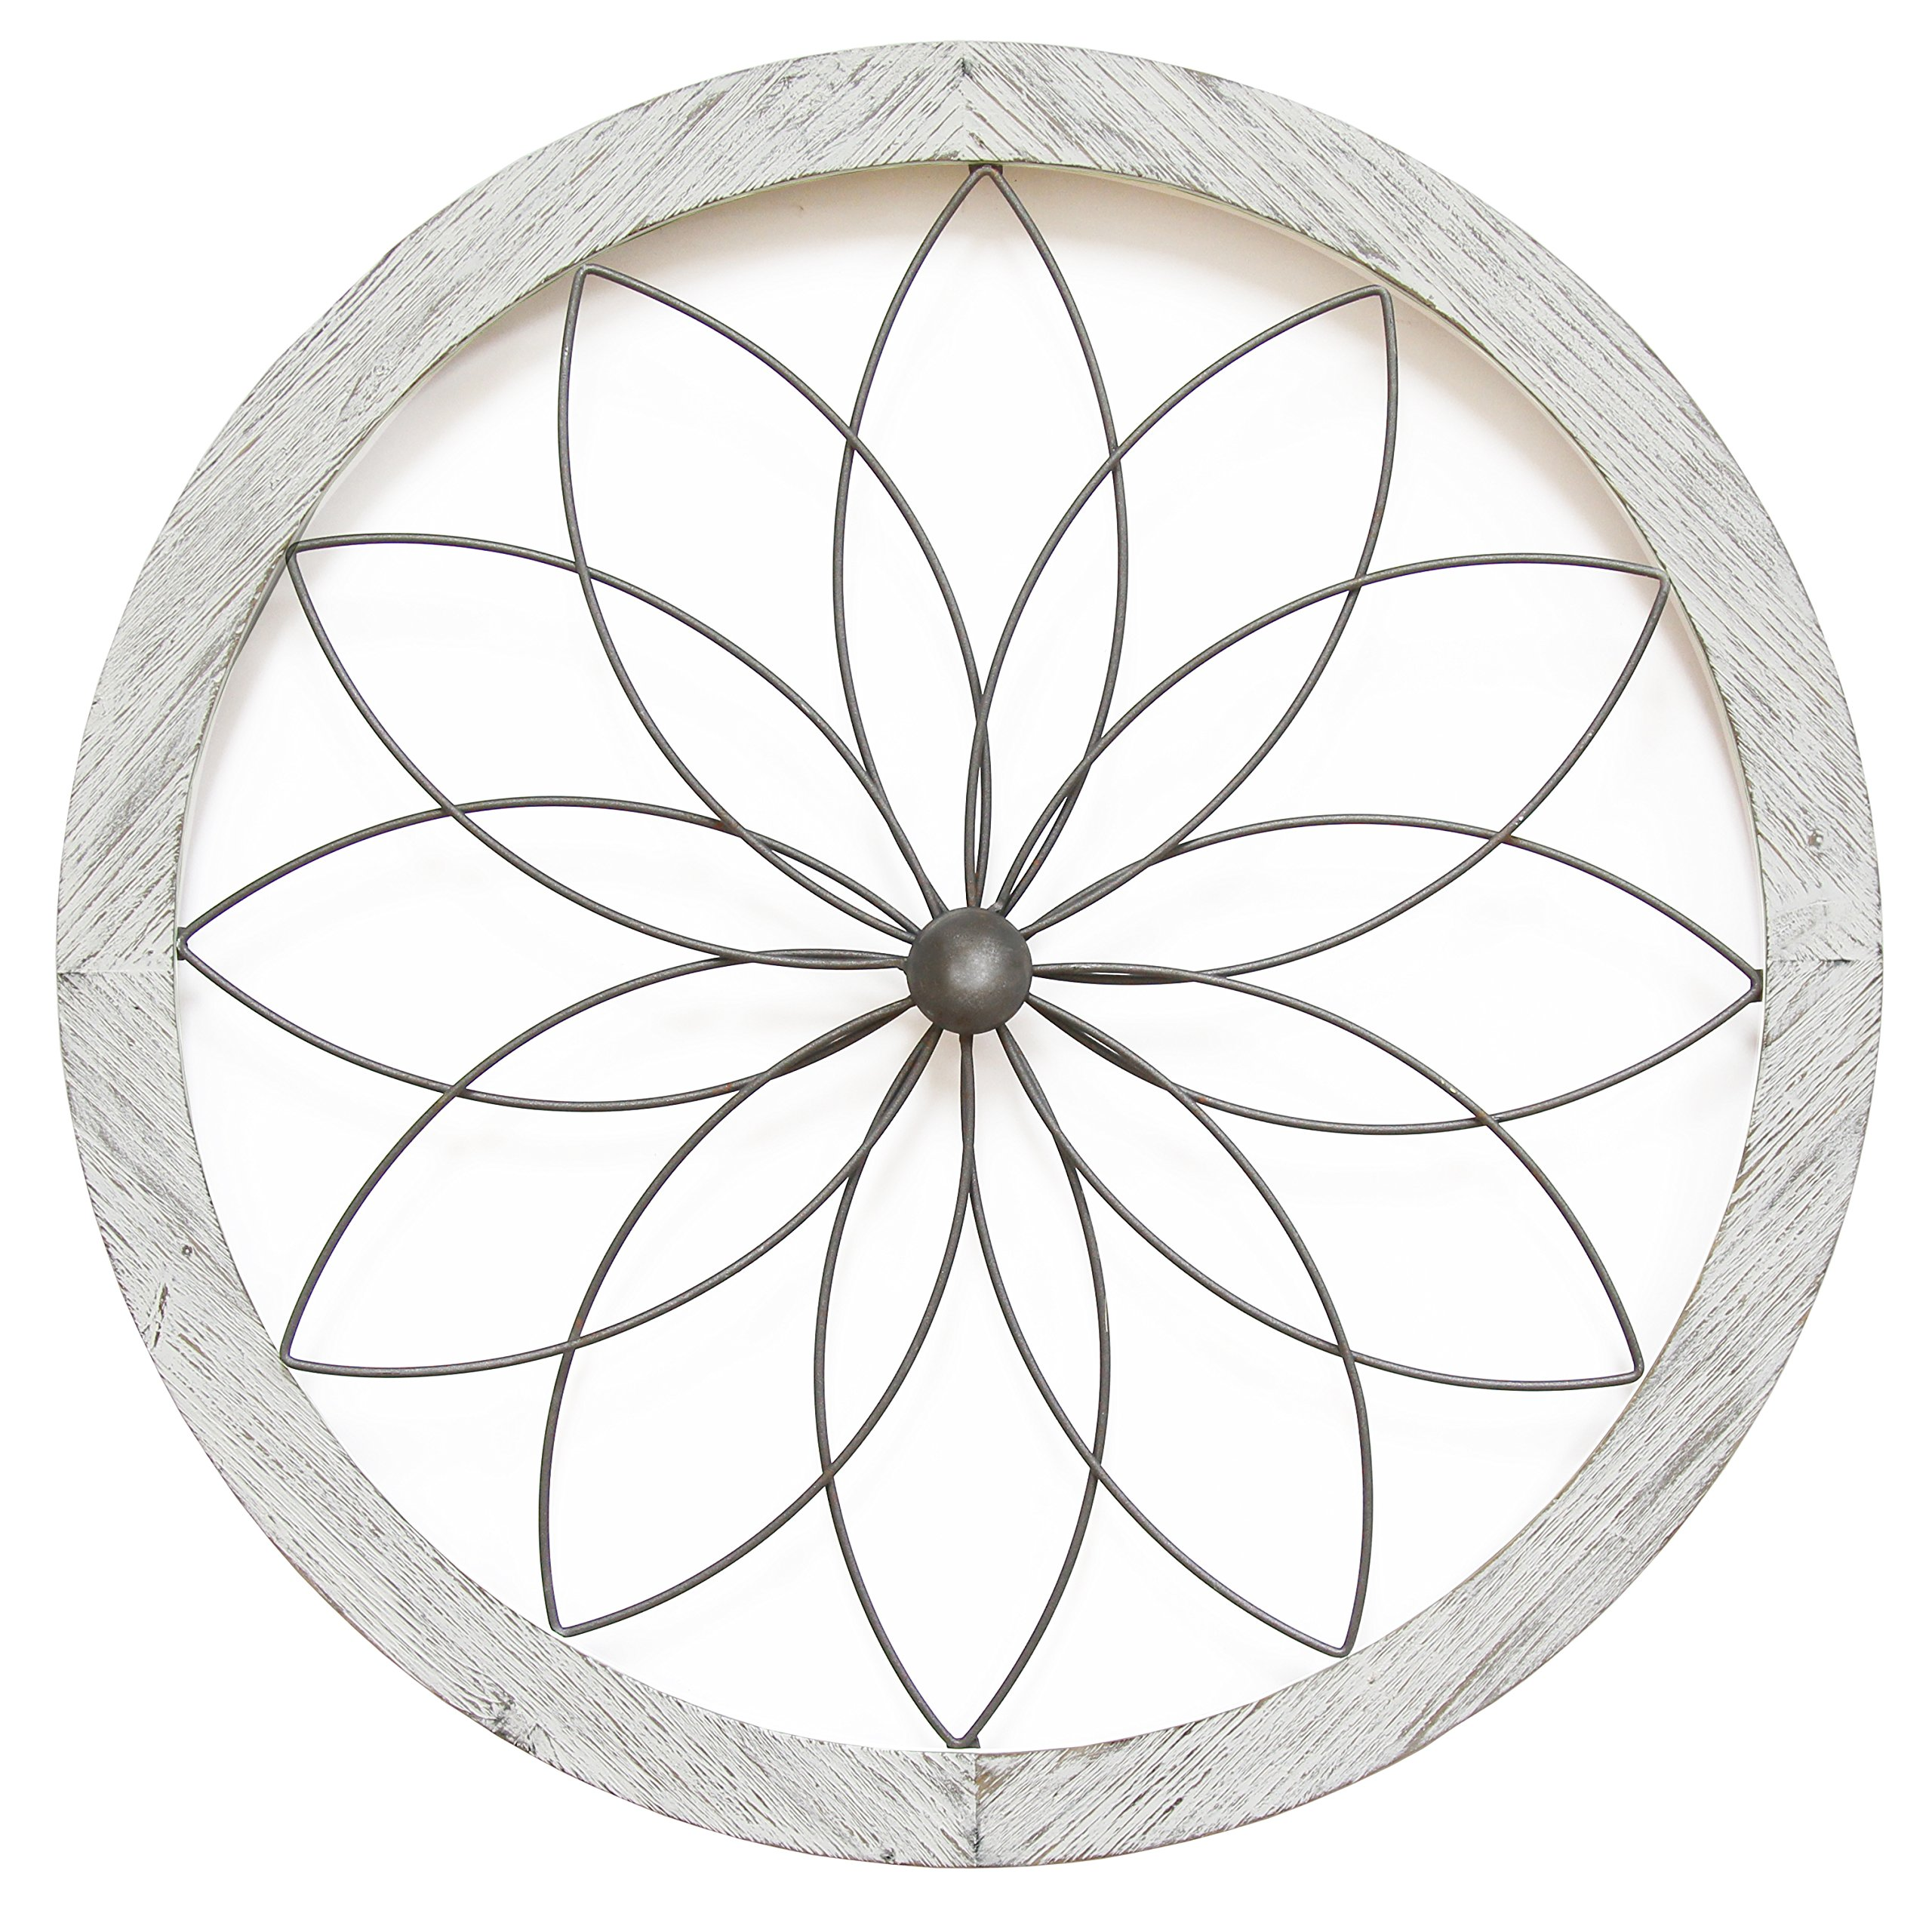 Stratton Home Decor Flower Metal and Wood Art Deco Wall Decor, White